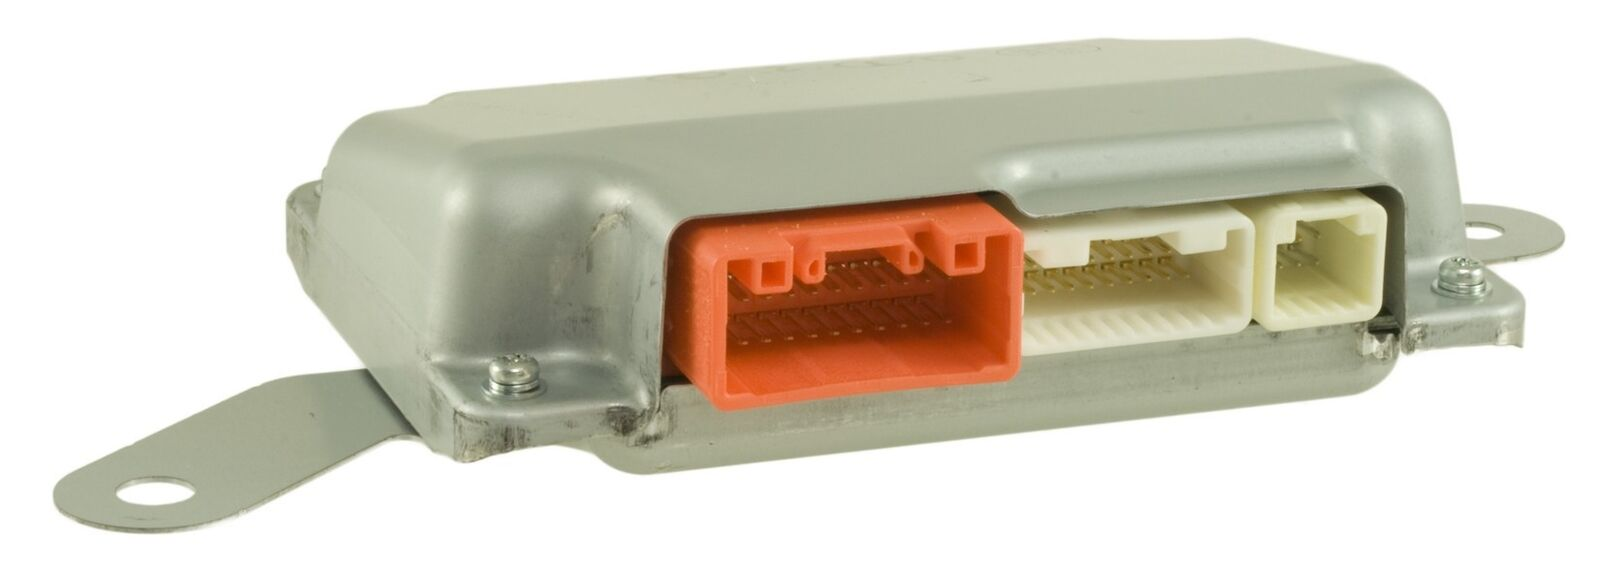 Hybrid Battery Voltage Sensor Wells Su10377 Fits 2007 Toyota Camry Fuse Box 24l L4 1 Of 6only 3 Available